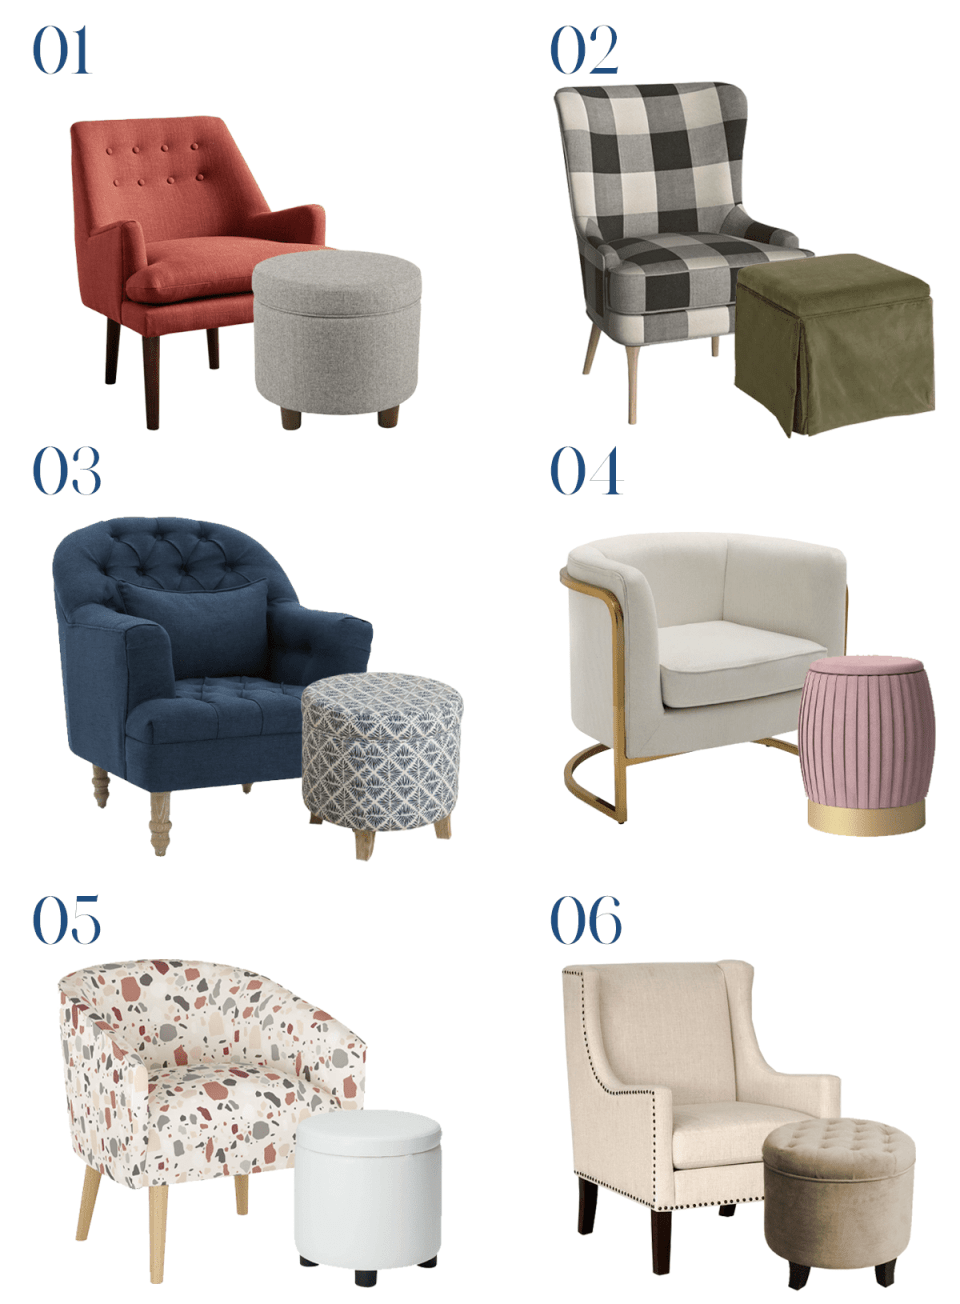 6 armchair and storage ottoman pairs for your home office